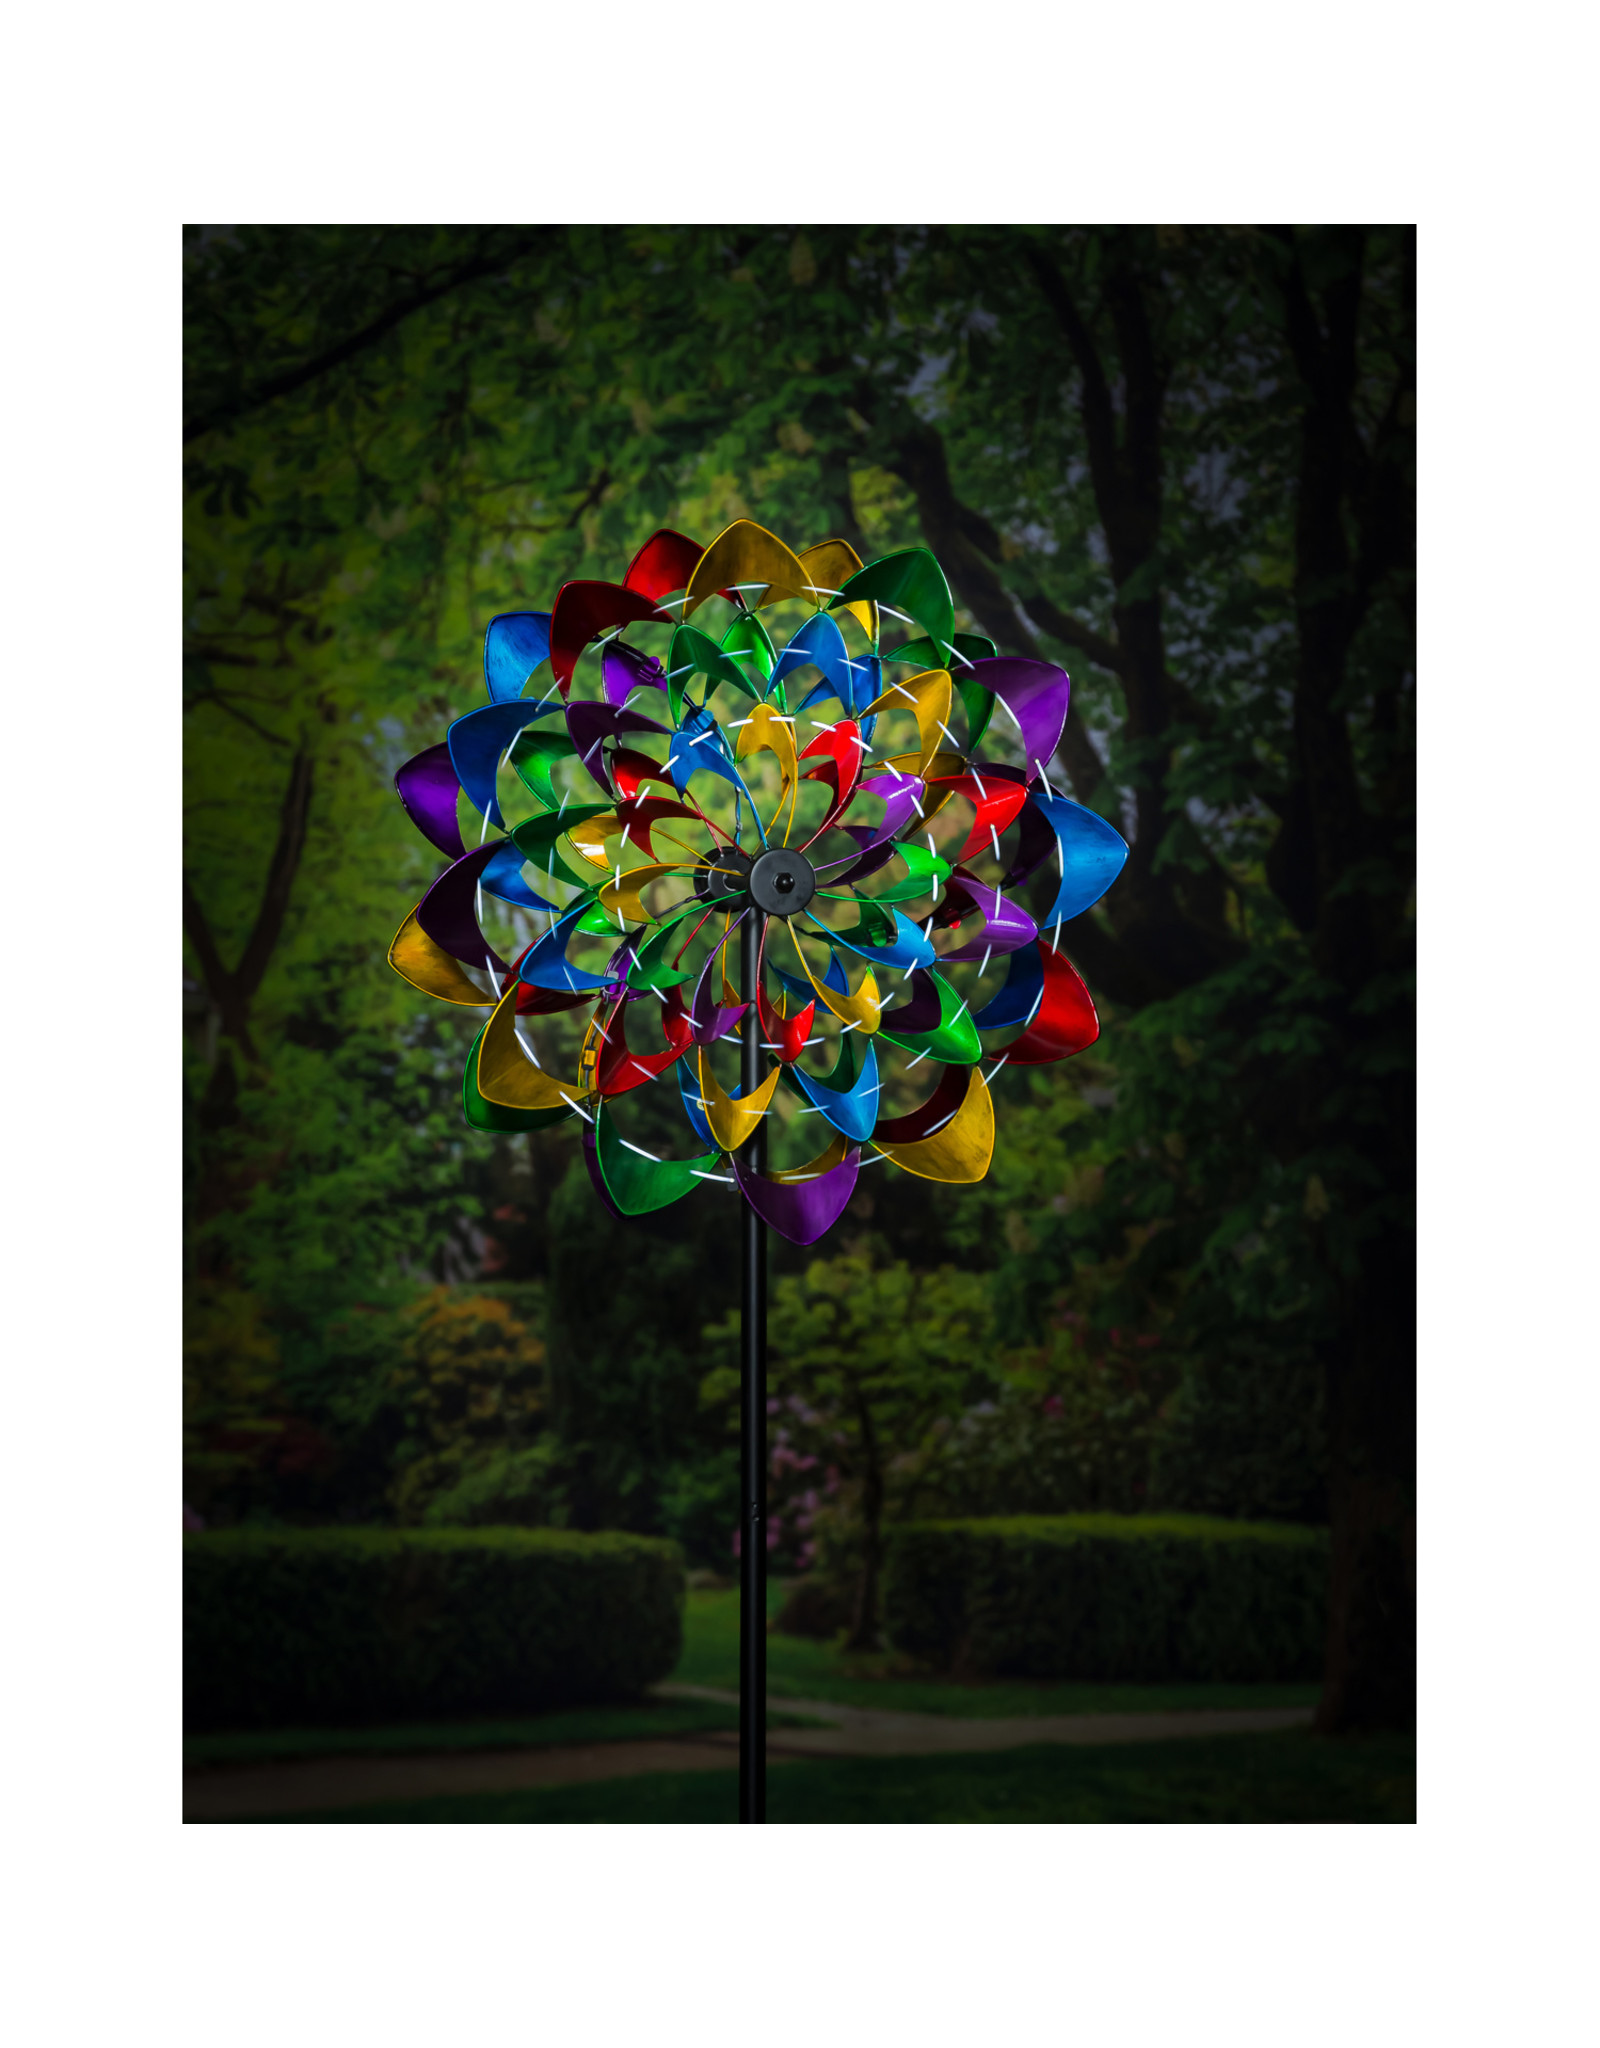 Evergreen COLORFUL WIND POWERED LIGHTED WIND SPINNER